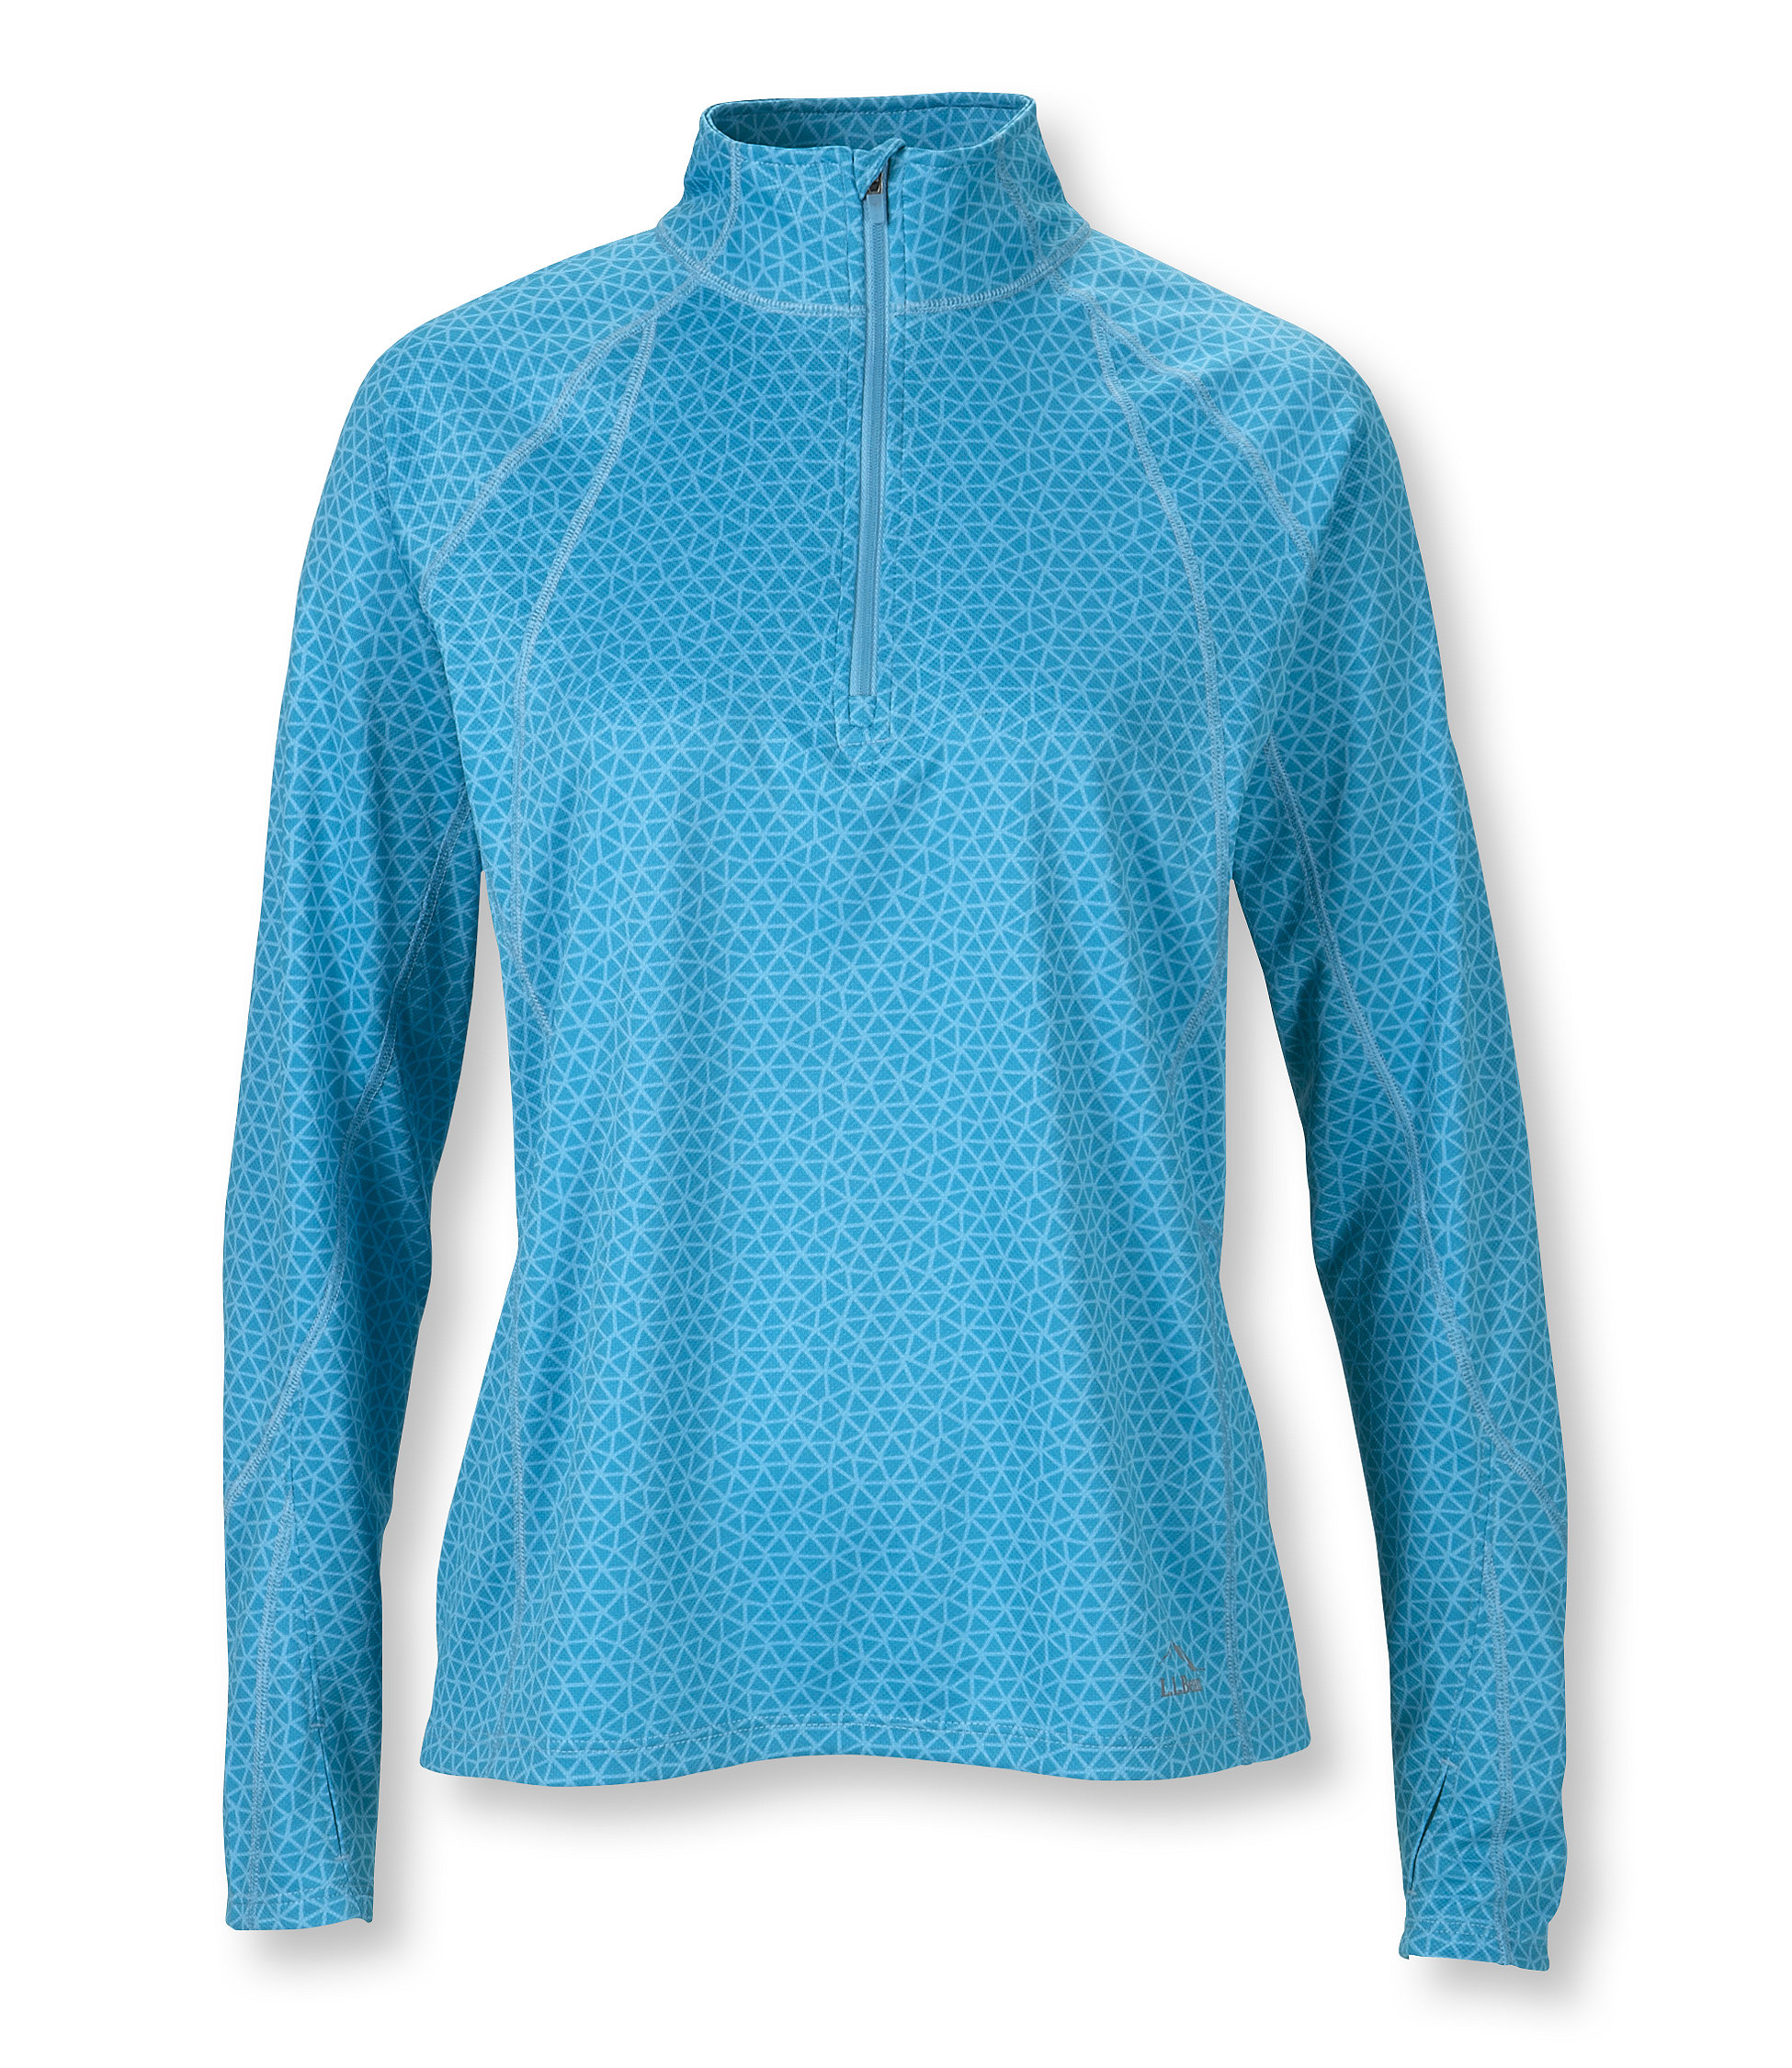 L.L.Bean Beansport Quarter-Zip Pullover, Print